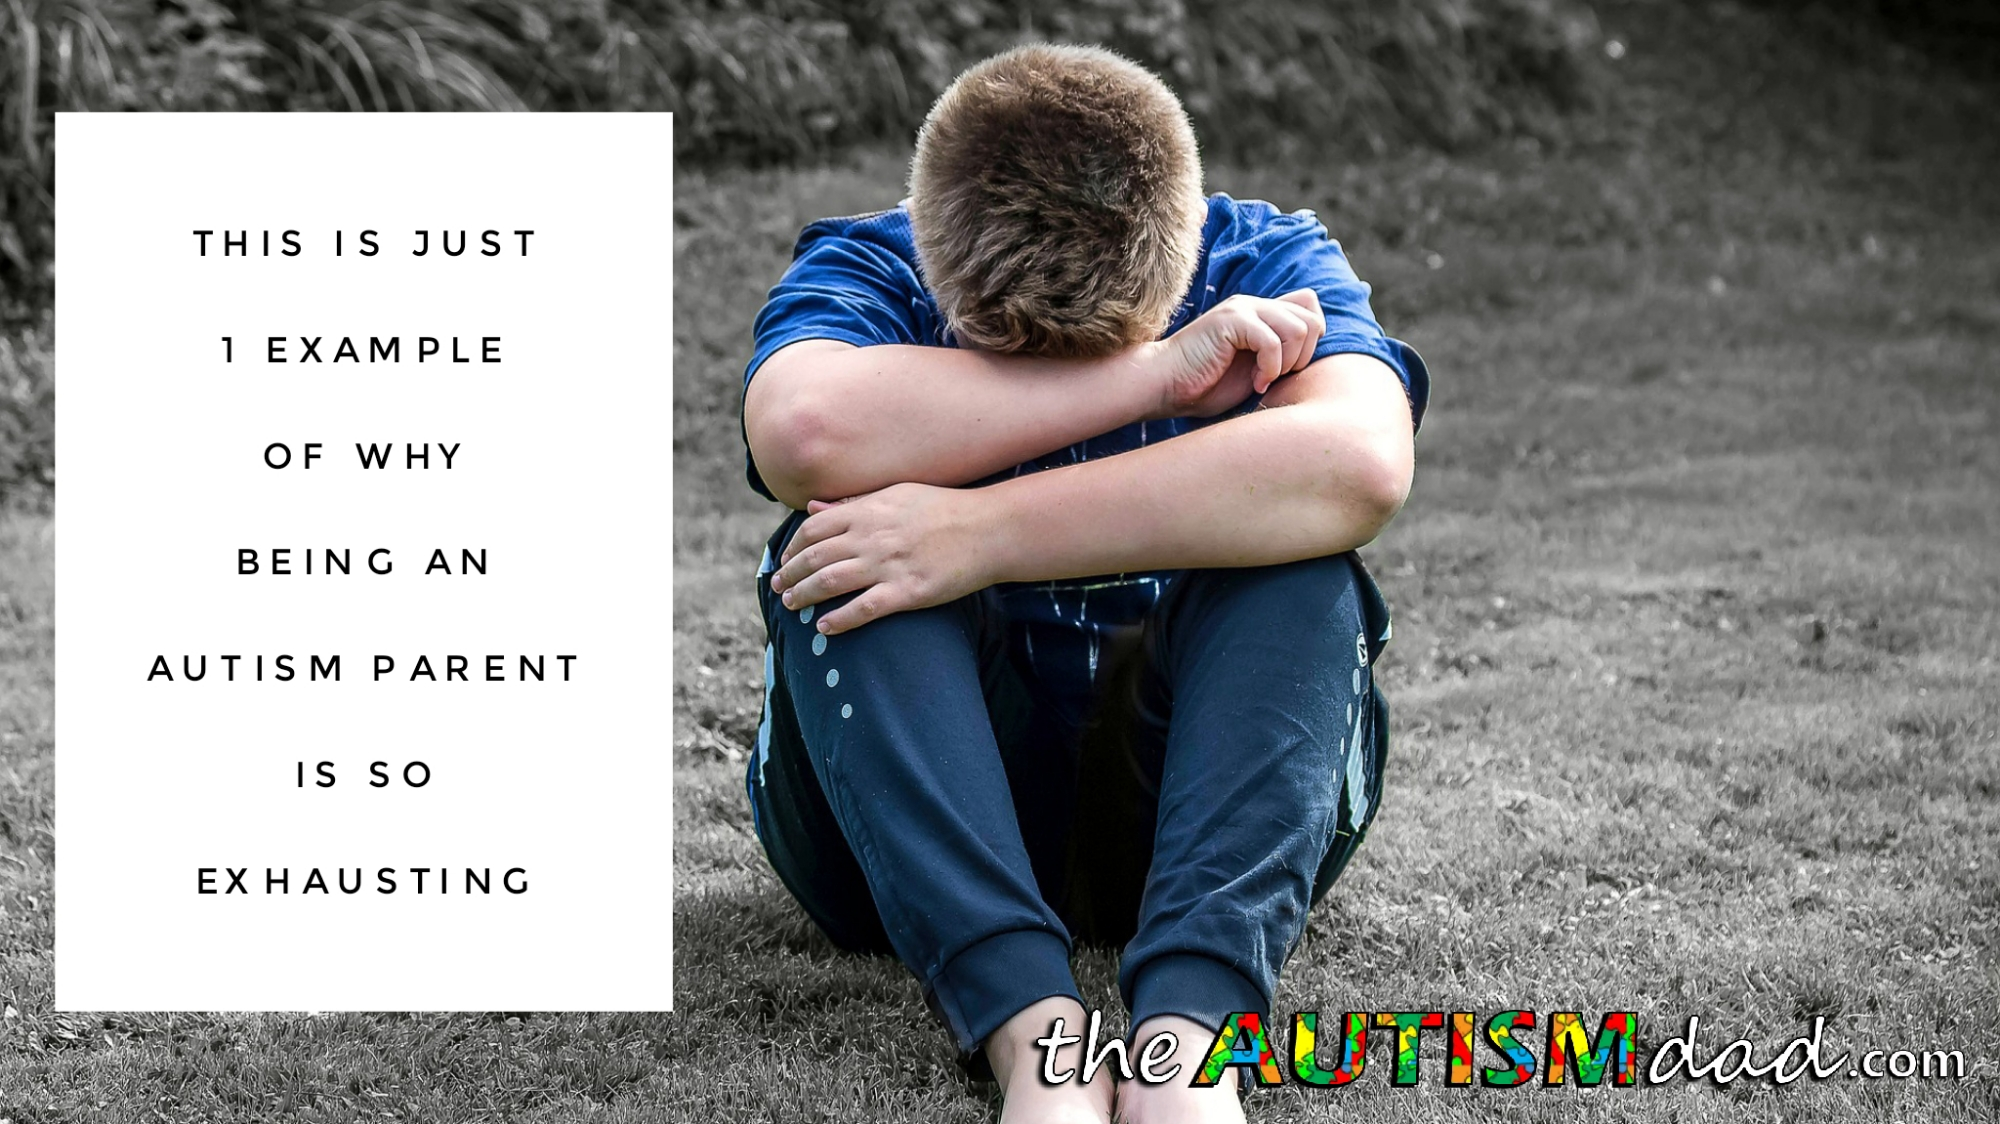 This is just 1 example of why being an #Autism parent is so exhausting